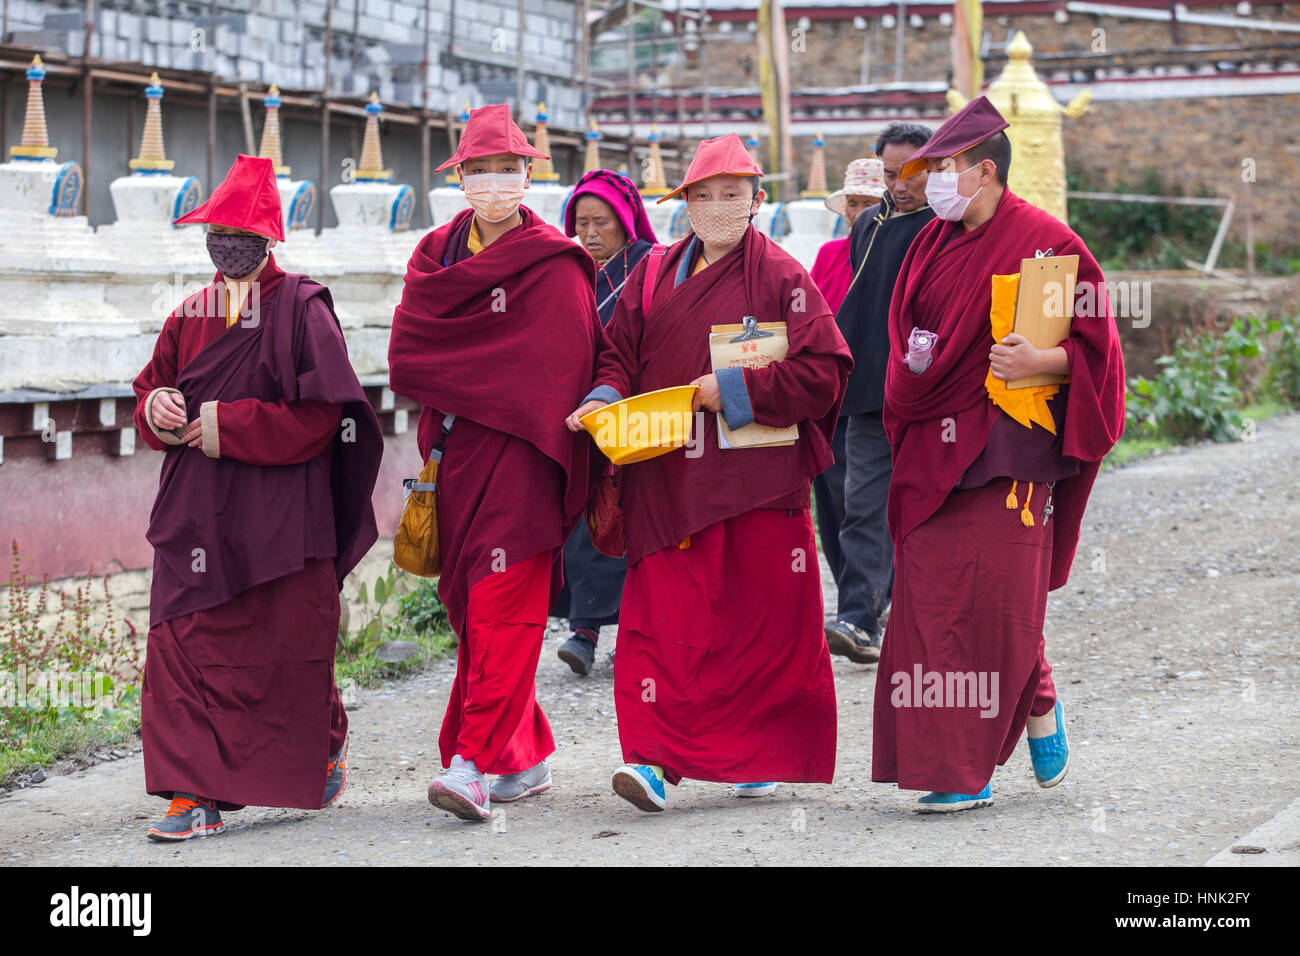 Nuns and monks participate at prayer rituals at the Tagong Tibetan Buddhist nunnery. - Stock Image